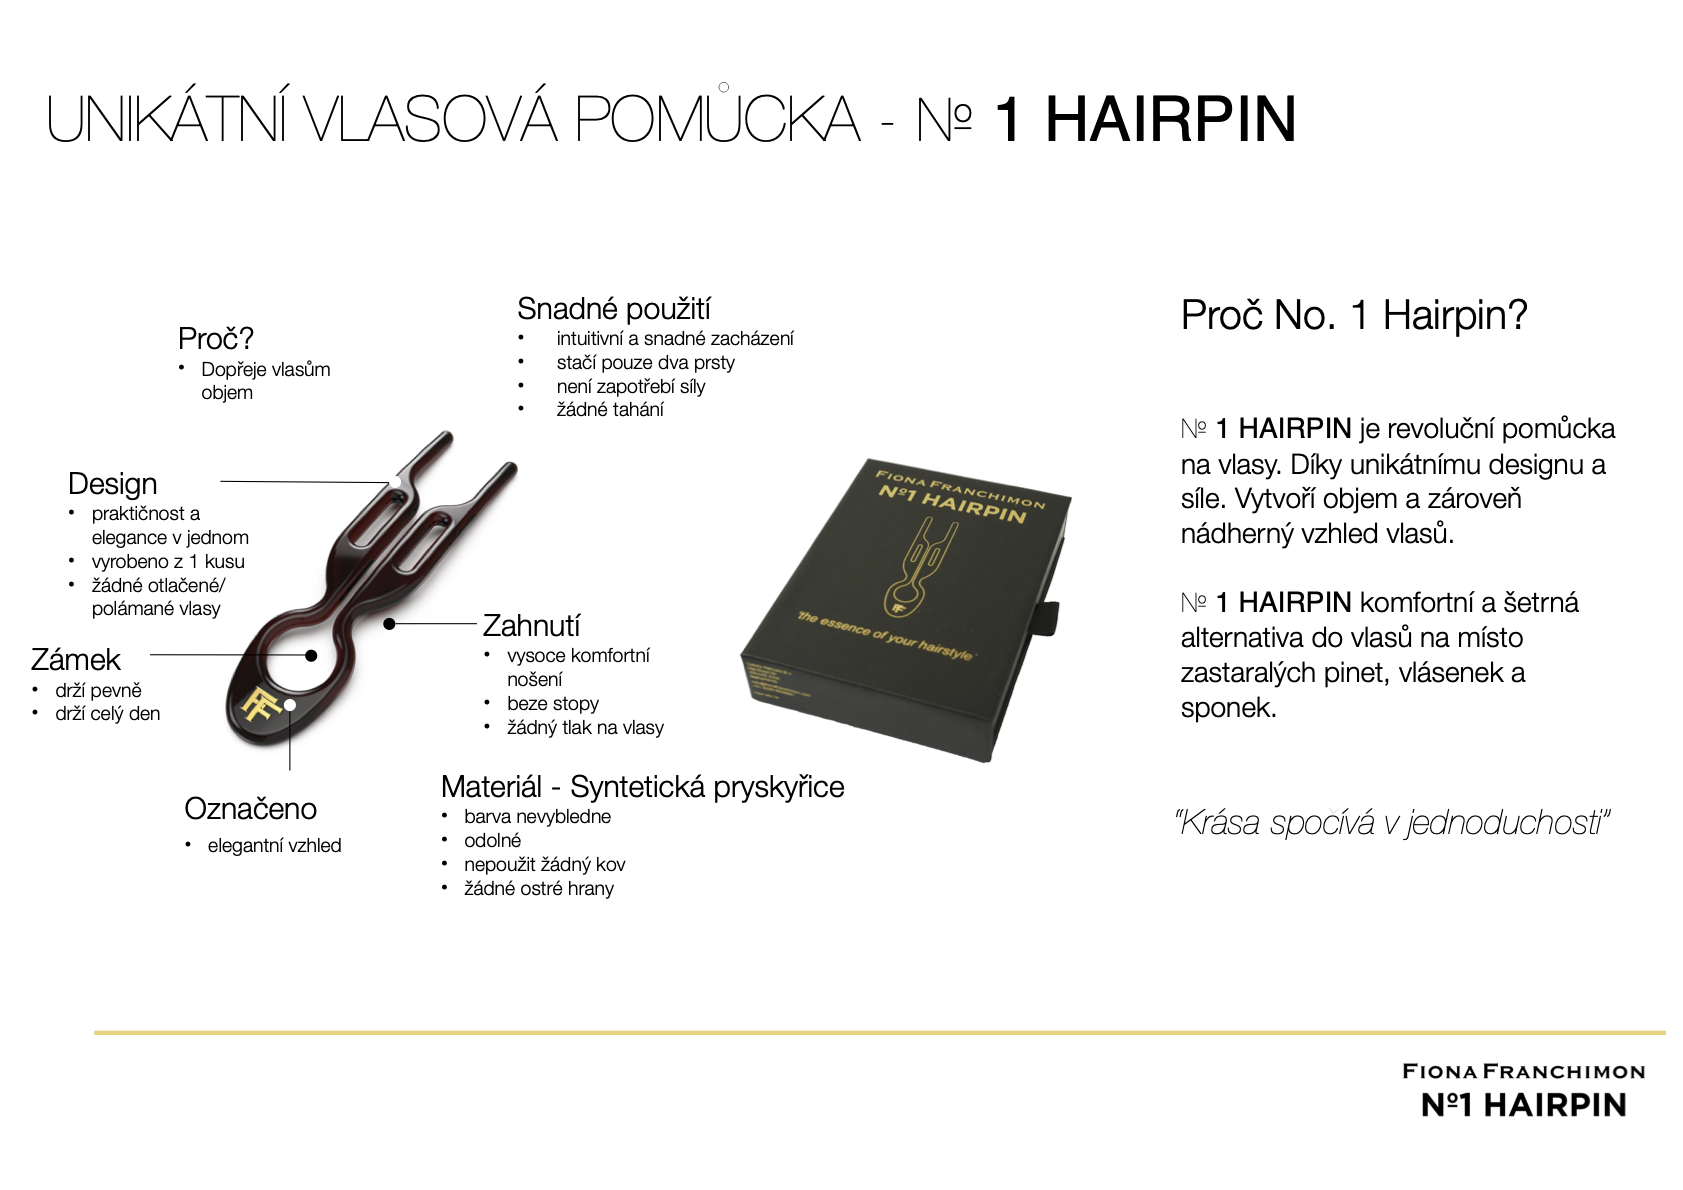 Fiona Franchimon No 1 Hairpin